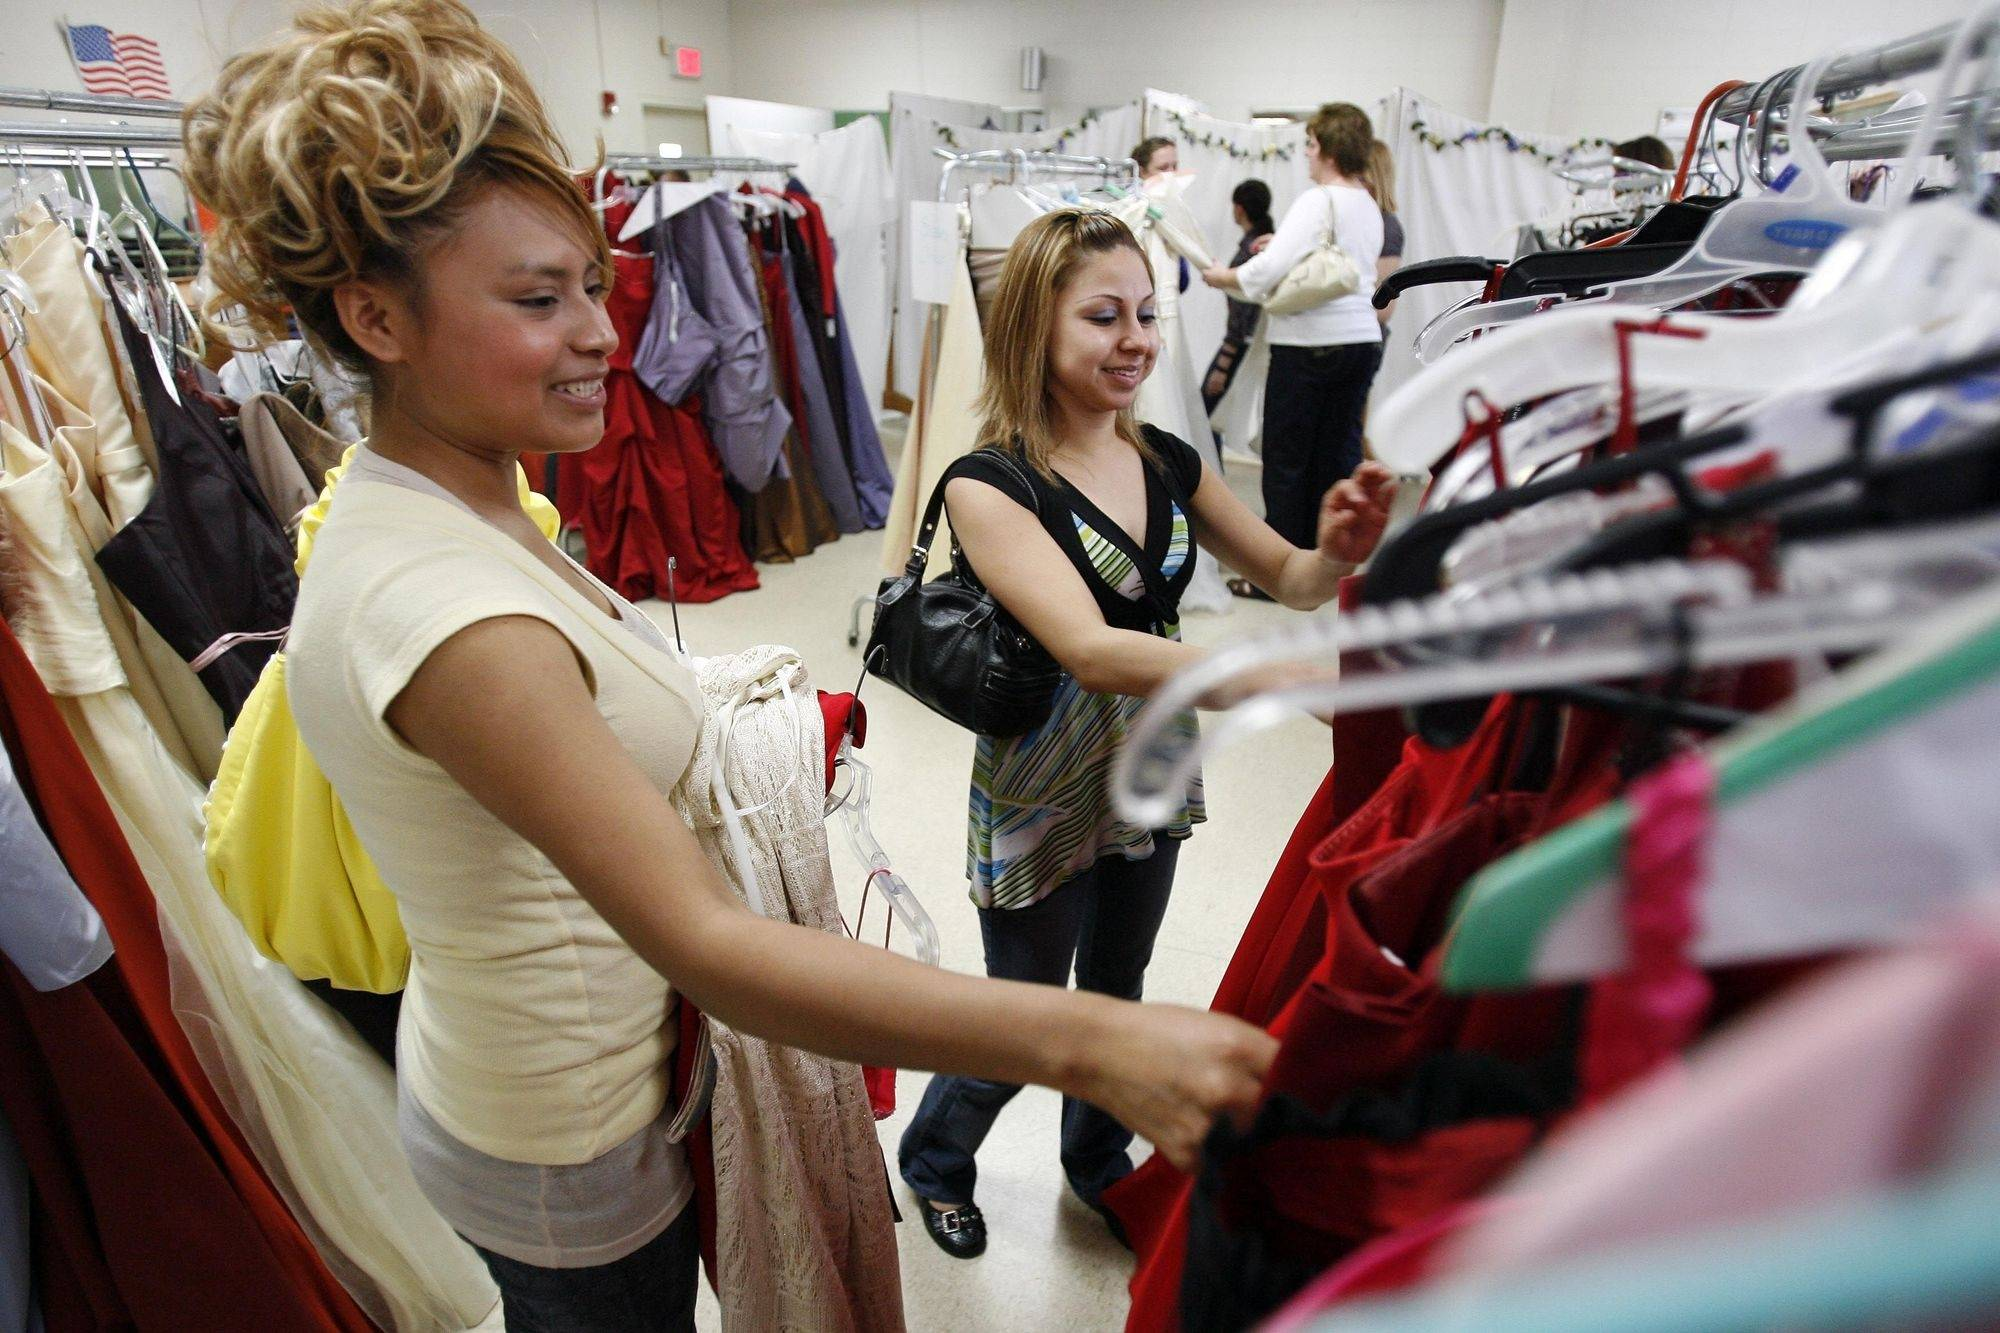 Eighteen-year-old Maribel Teapila, of Streamwood, left, gets some help from her friend Lucia Figeroa, 24, of Glendale Heights as she looks for a prom dress during the sale Saturday at the YWCA in Elgin.